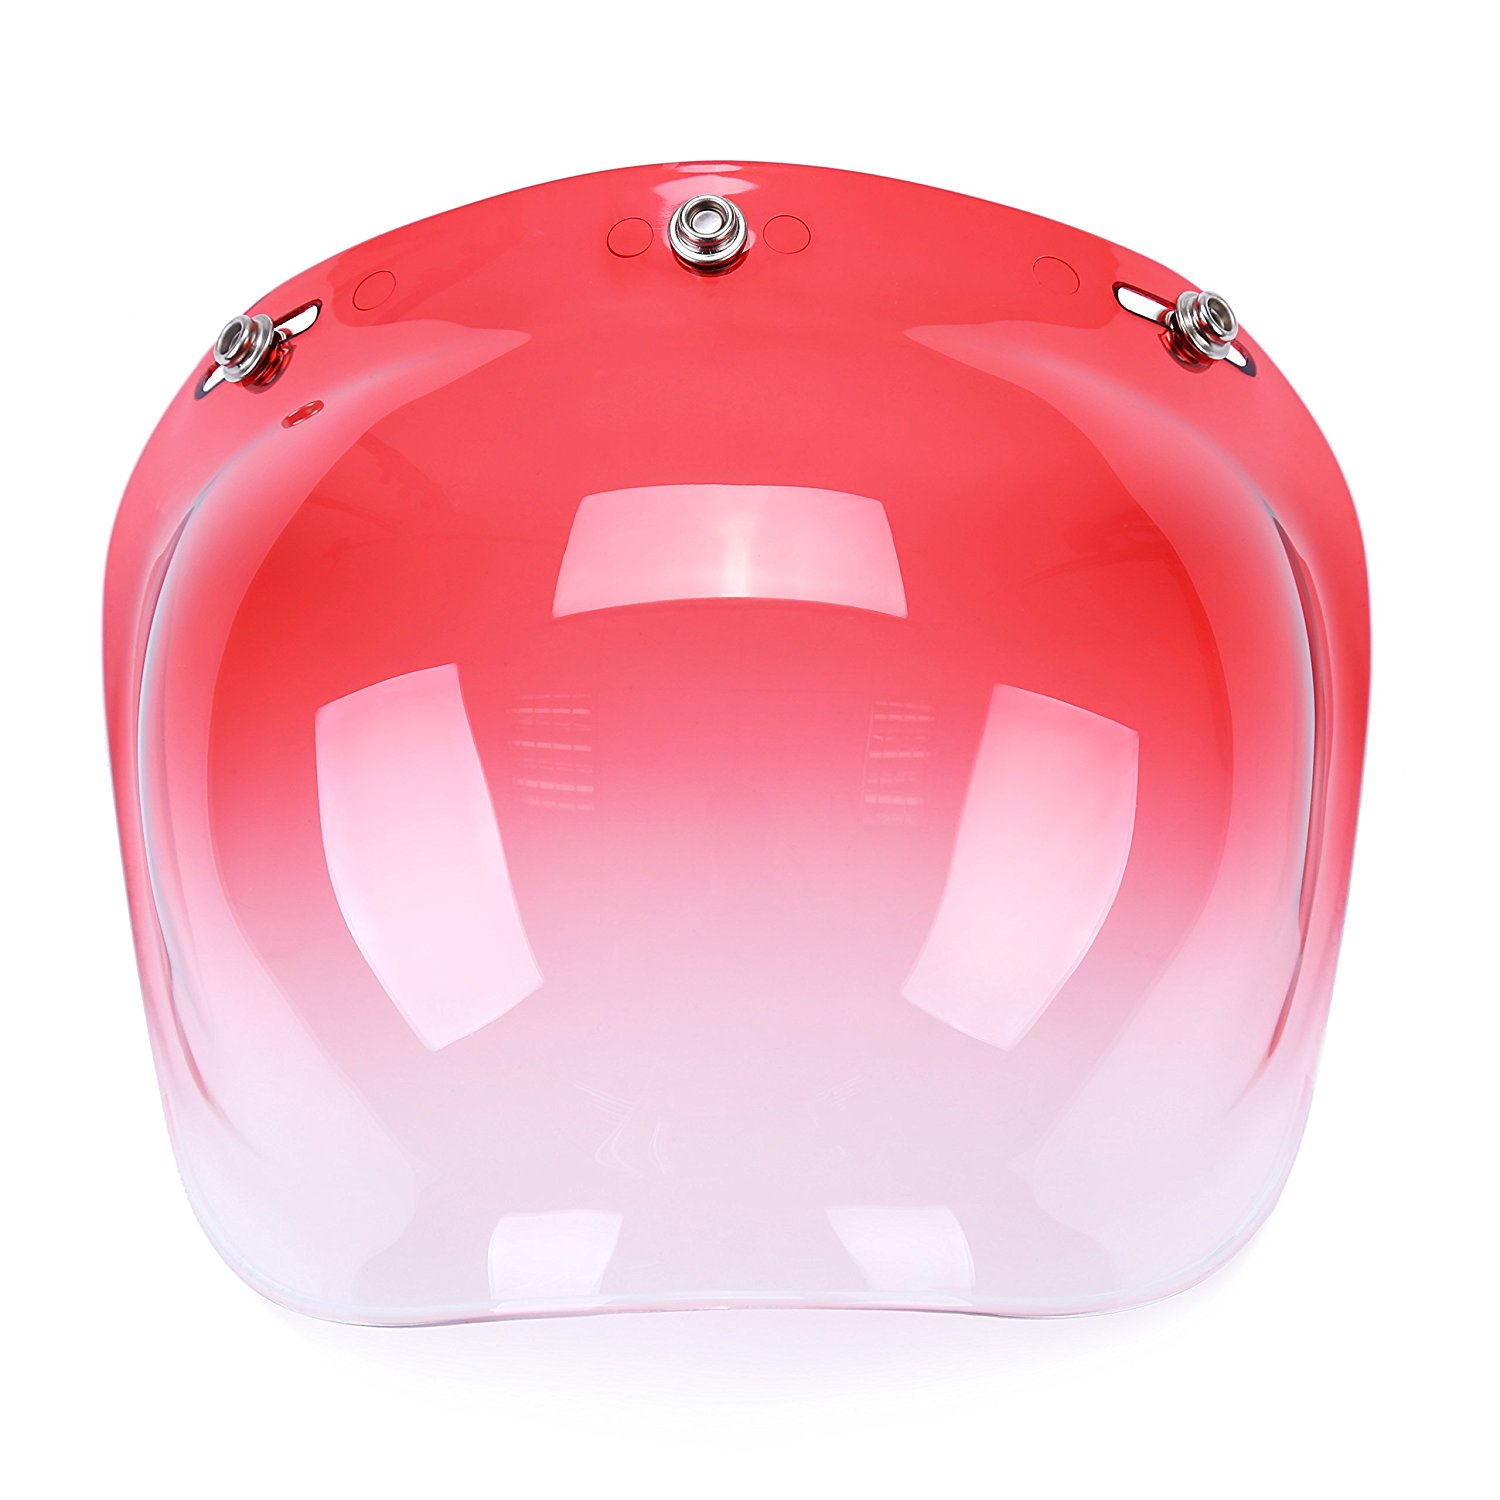 682a9e82 Get Quotations · Professional Motorcycle Helmet Bubble Visor Helmet Shield  Glass Fits All Kinds of Jet Helmet (Pink